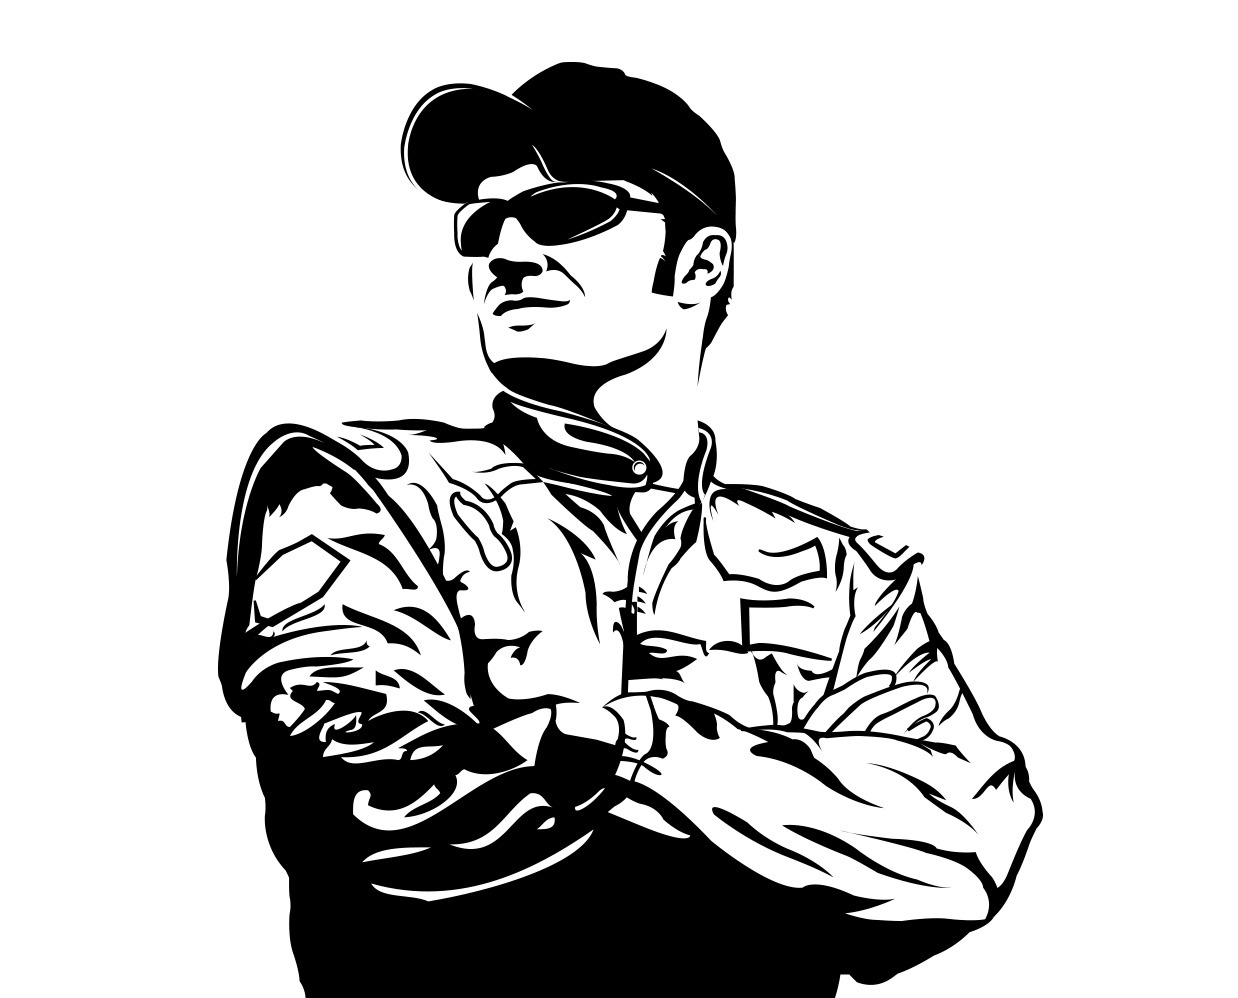 8528169cbdb134e9 Nascar Dale Earnhardt Coloring Pages furthermore Dale Earnhardt Jr Captures Pole At furthermore 1310480 additionally The 35 Biggest Juiciest Most Bonkers Floorplans Of 2013 also Free Nascar Coloring Pages. on 2013 nascar jeff gordon